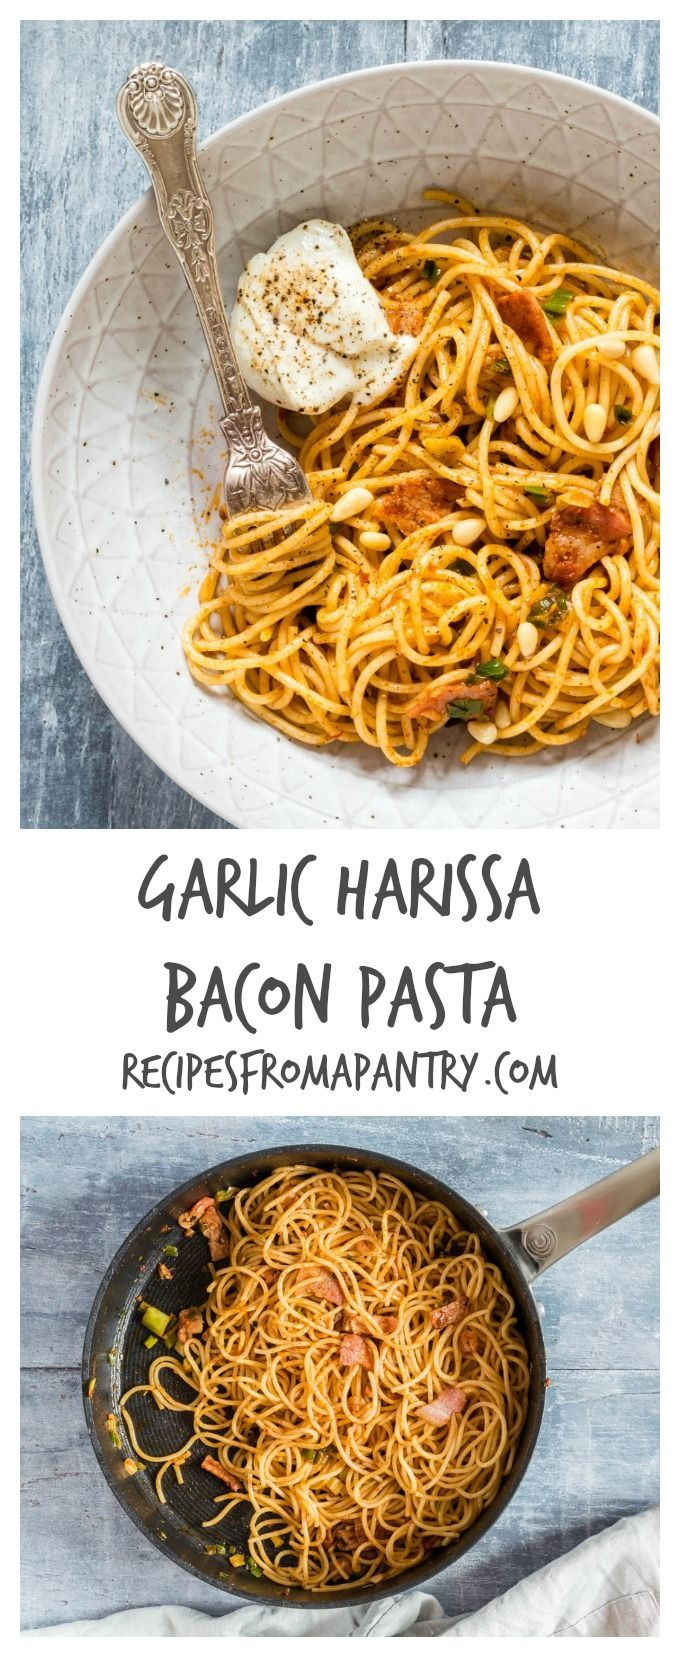 This garlic harissa bacon pasta recipe is incredible simple. Made from 5 ingredients aka garlic, pasta, spring onions, harissa and bacon. | recipesfromapantry.com